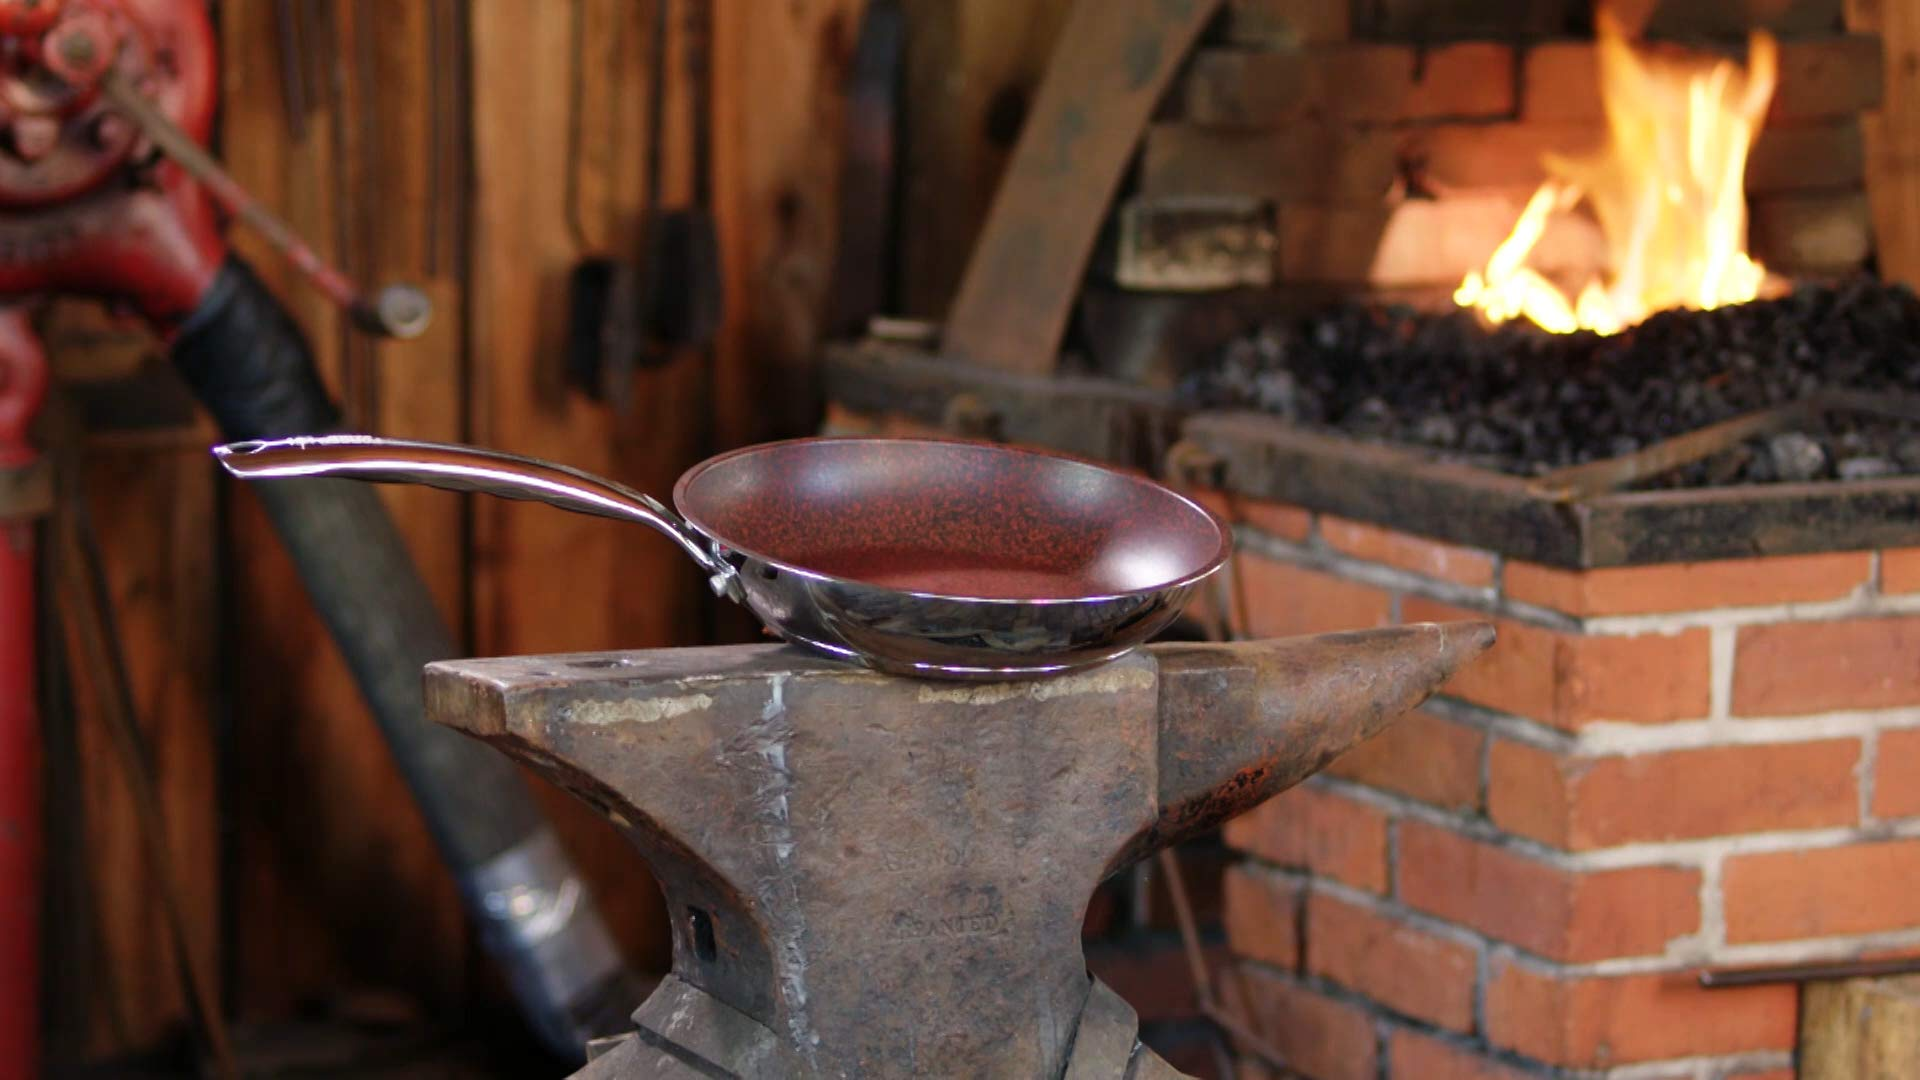 HISTORY - Forged in Fire - Stainless Steel Skillet - 11.5-Inch with 5 Layer Fire Glide Never Stick Coating by Forged in Fire (Image #6)